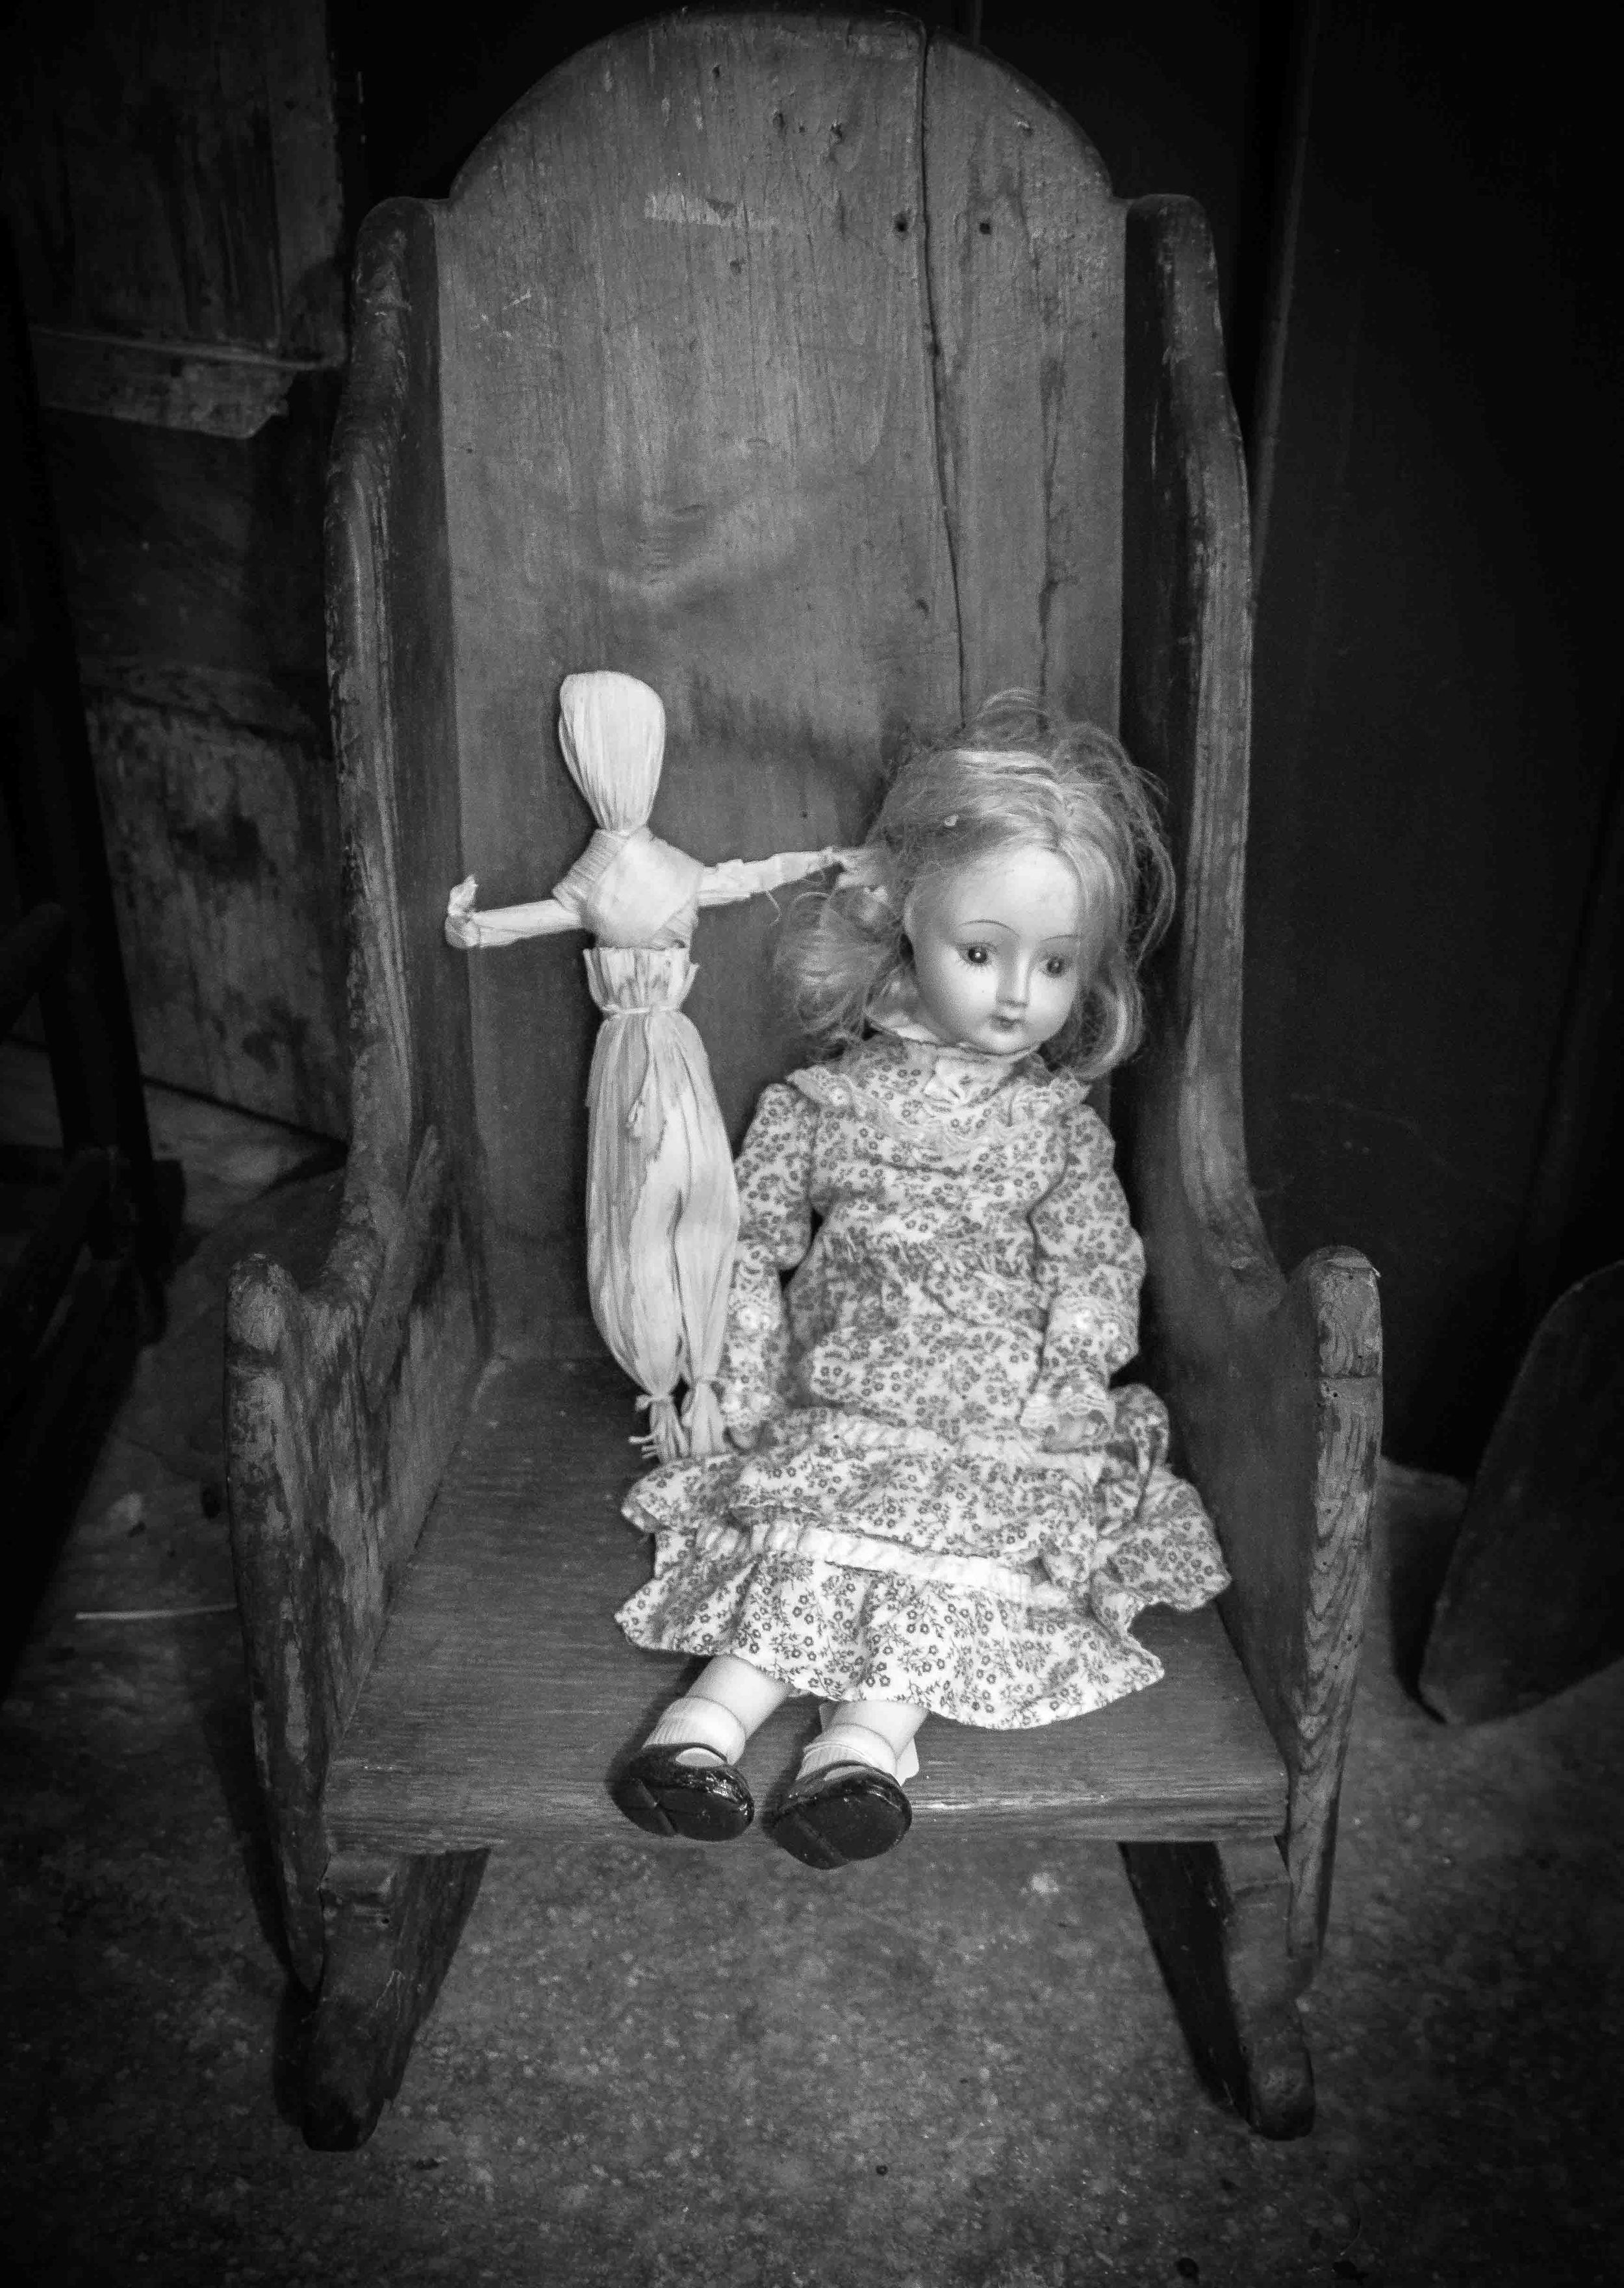 Doll in room